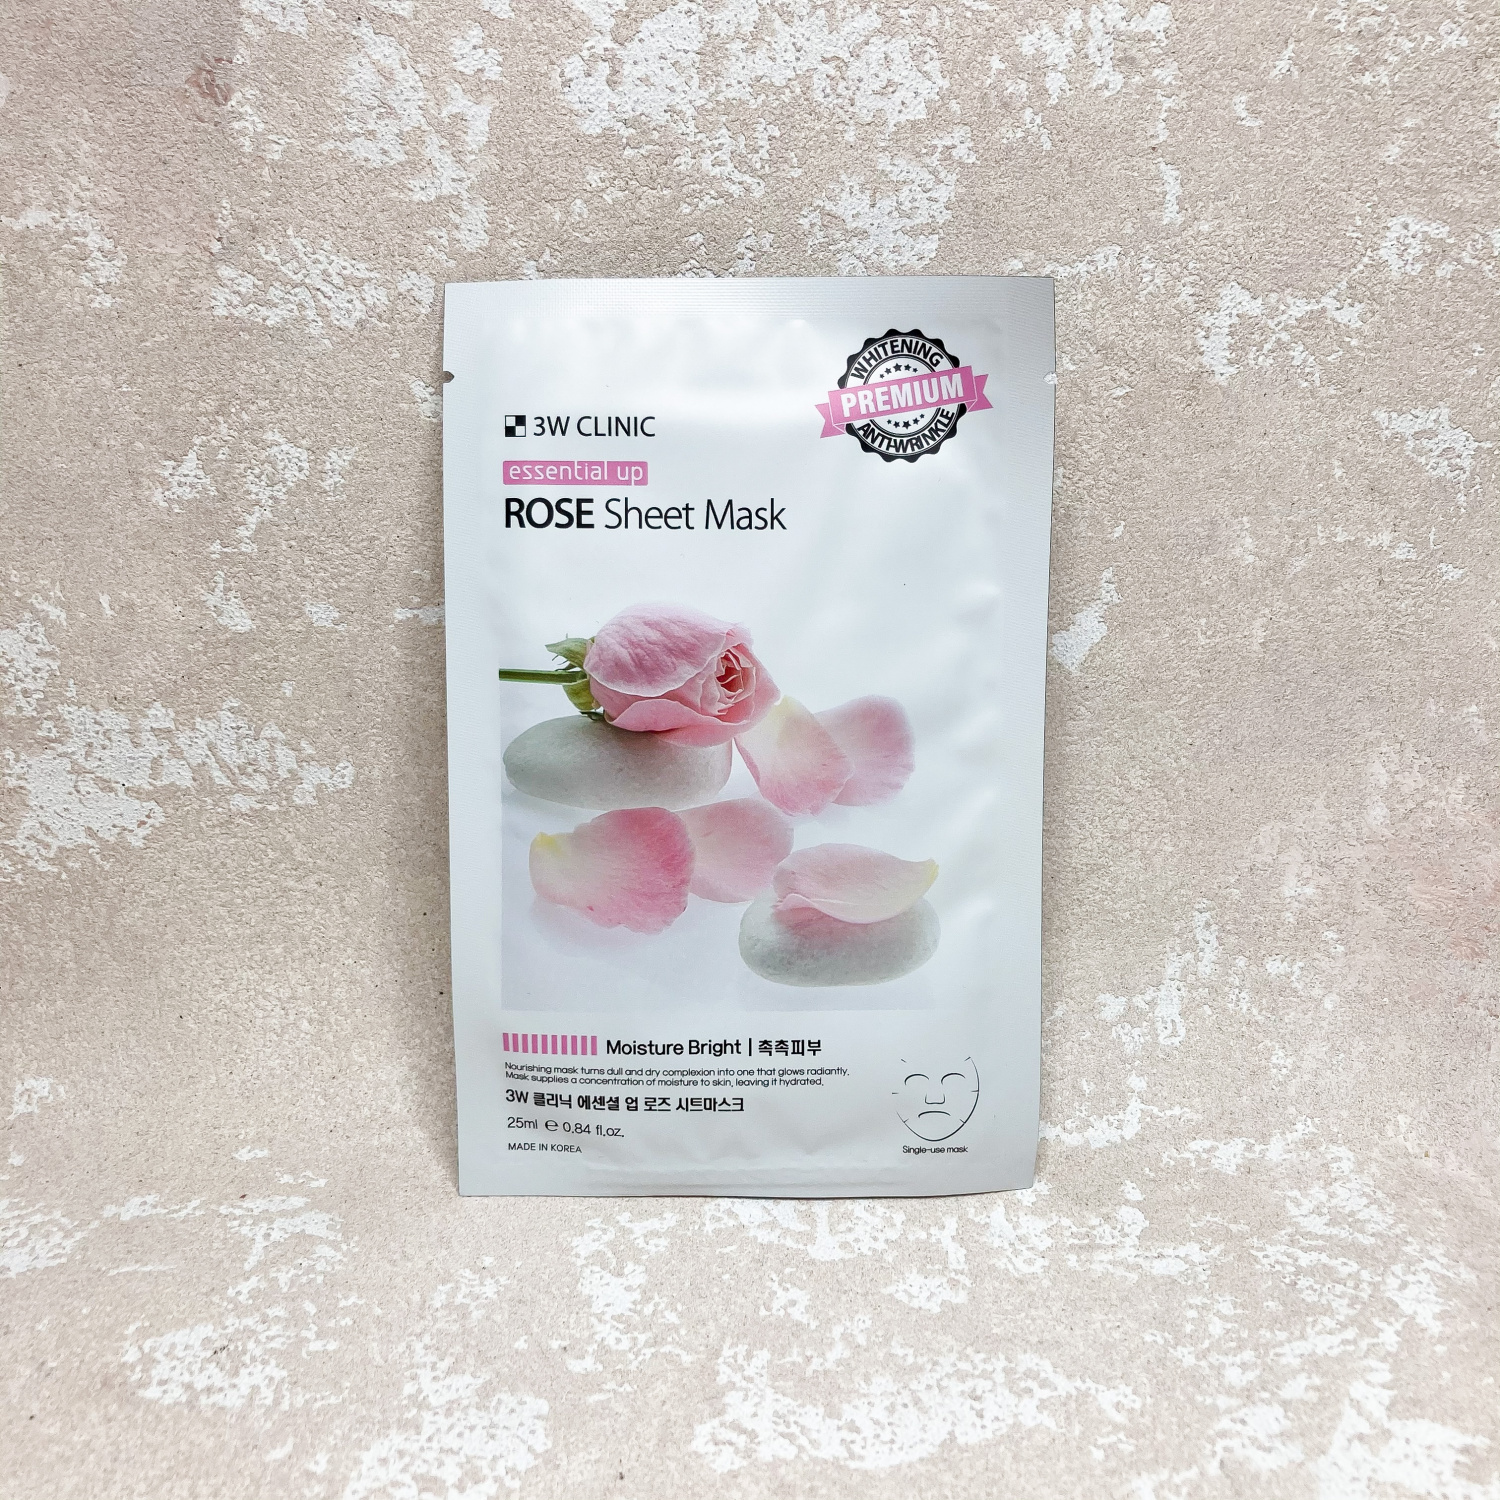 3W Clinic Essential Up Rose Sheet Mask